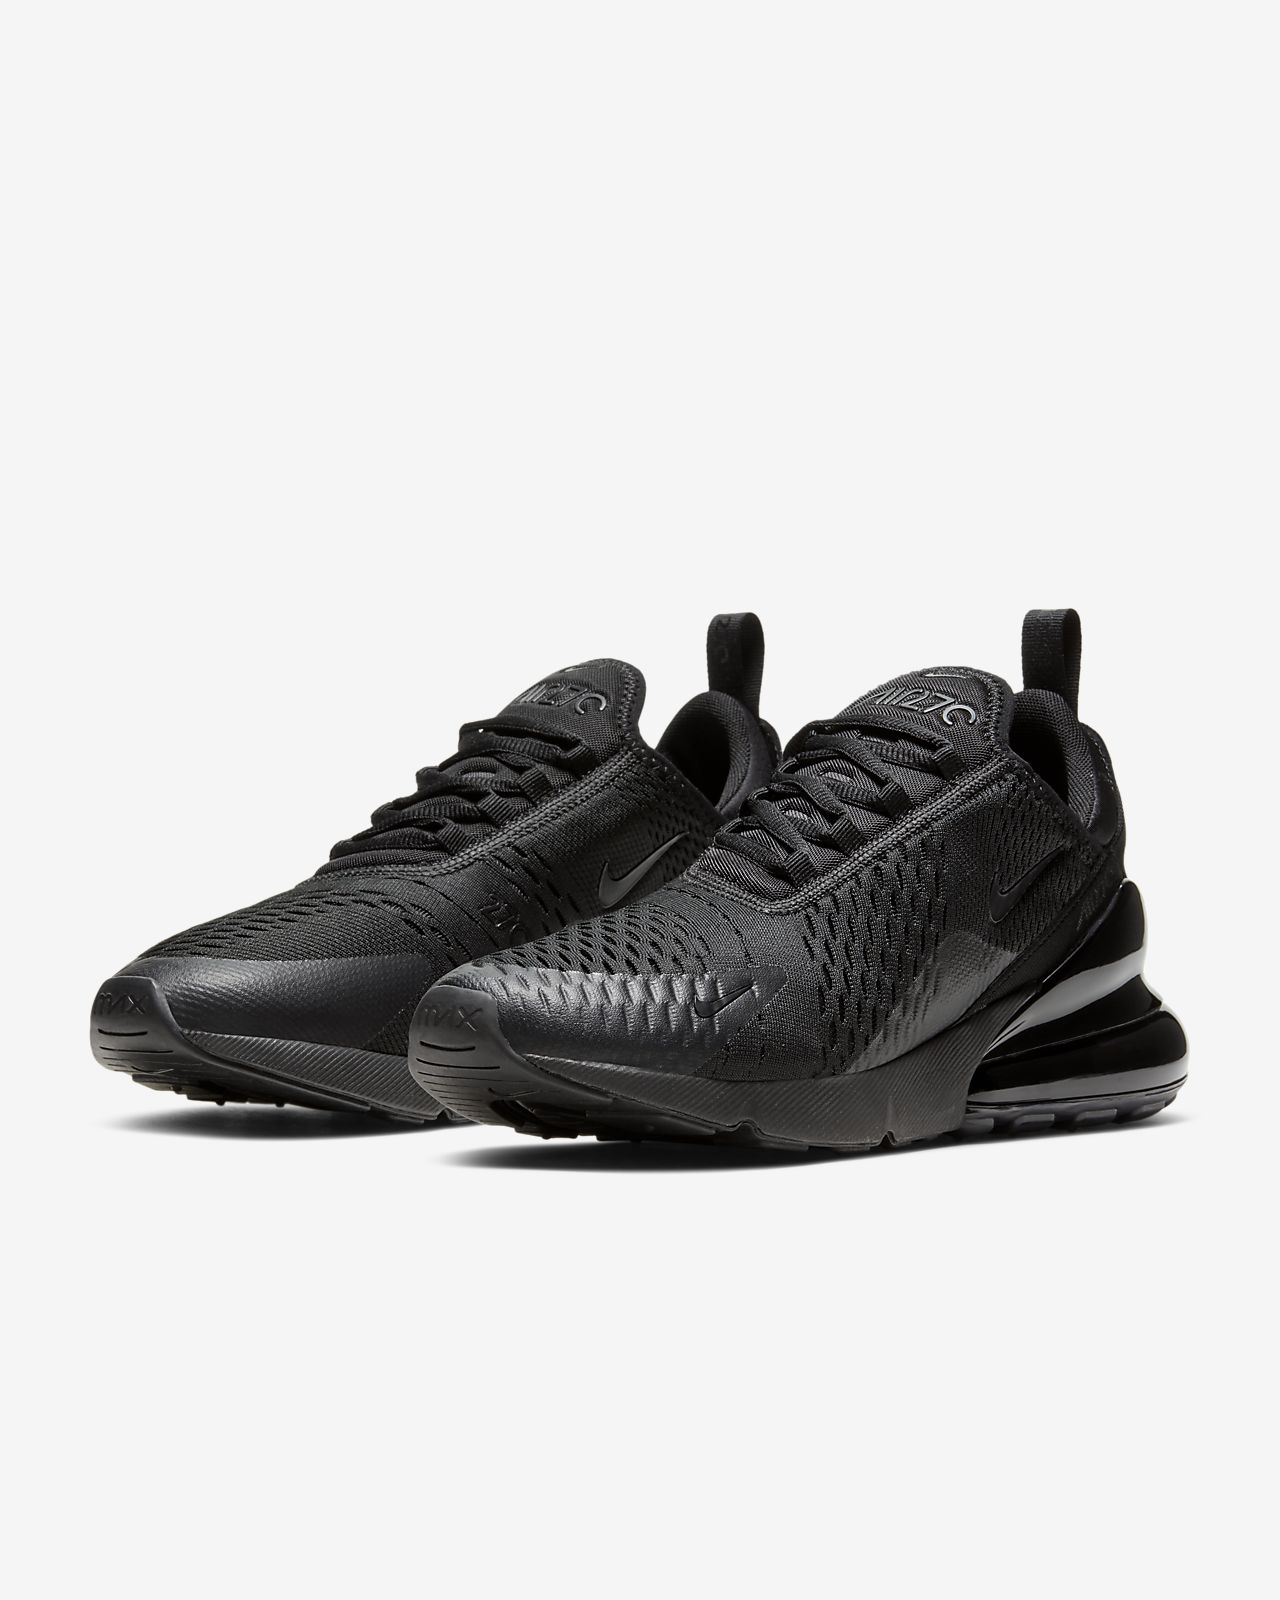 lowest price 836e3 a9215 ... Nike Air Max 270 Men s Shoe